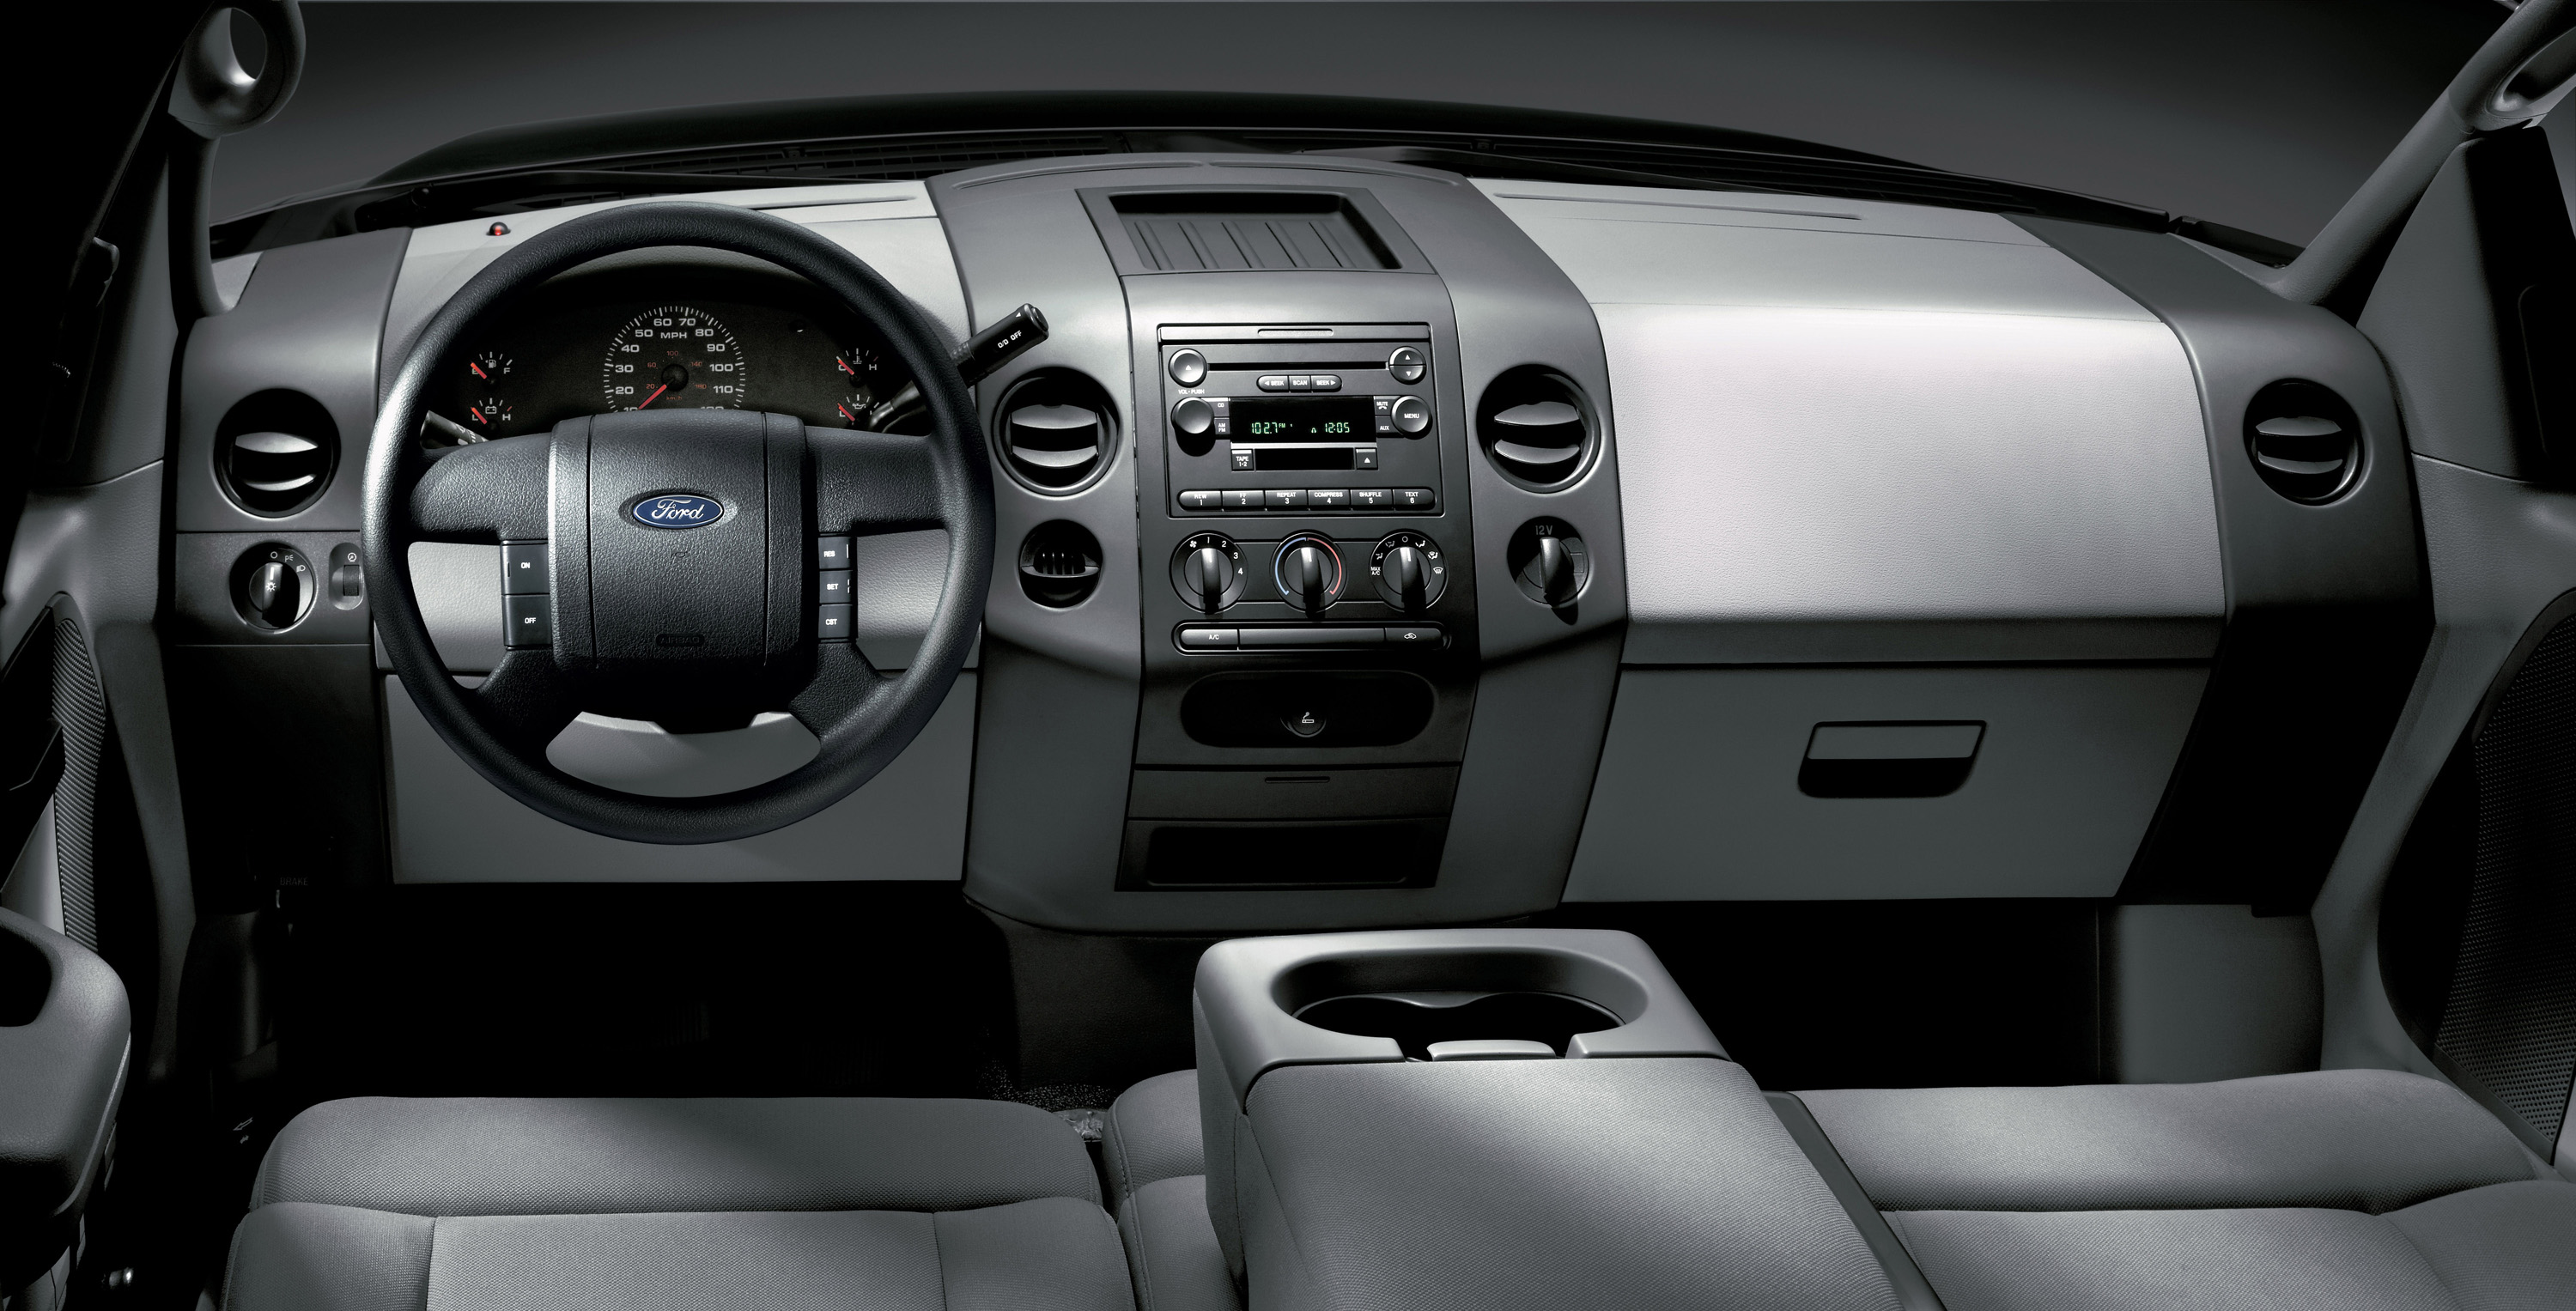 2006 Ford F-150 #7